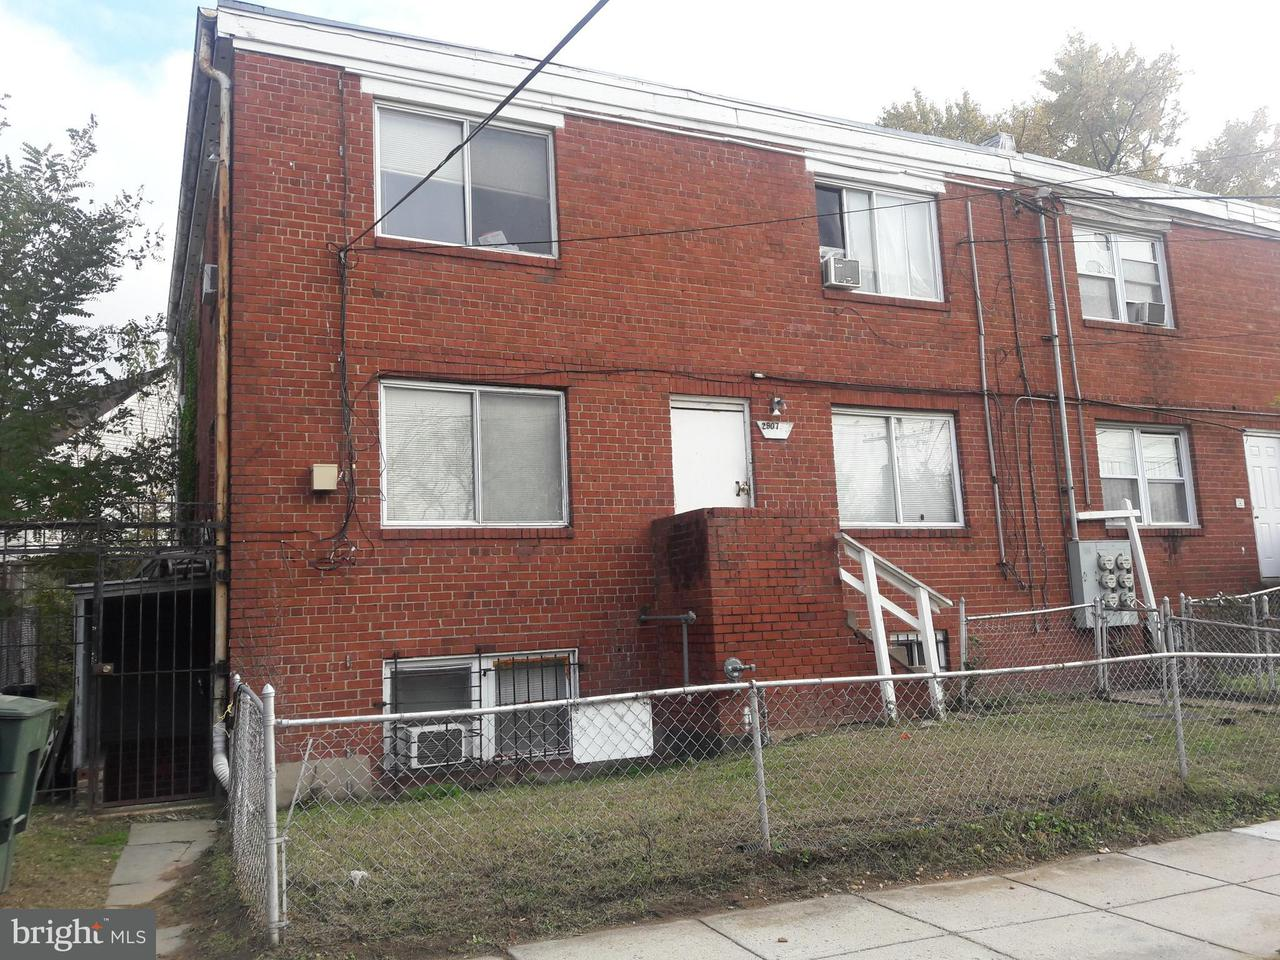 Additional photo for property listing at 2907 Fairlawn Ave SE  Washington, District Of Columbia 20019 United States